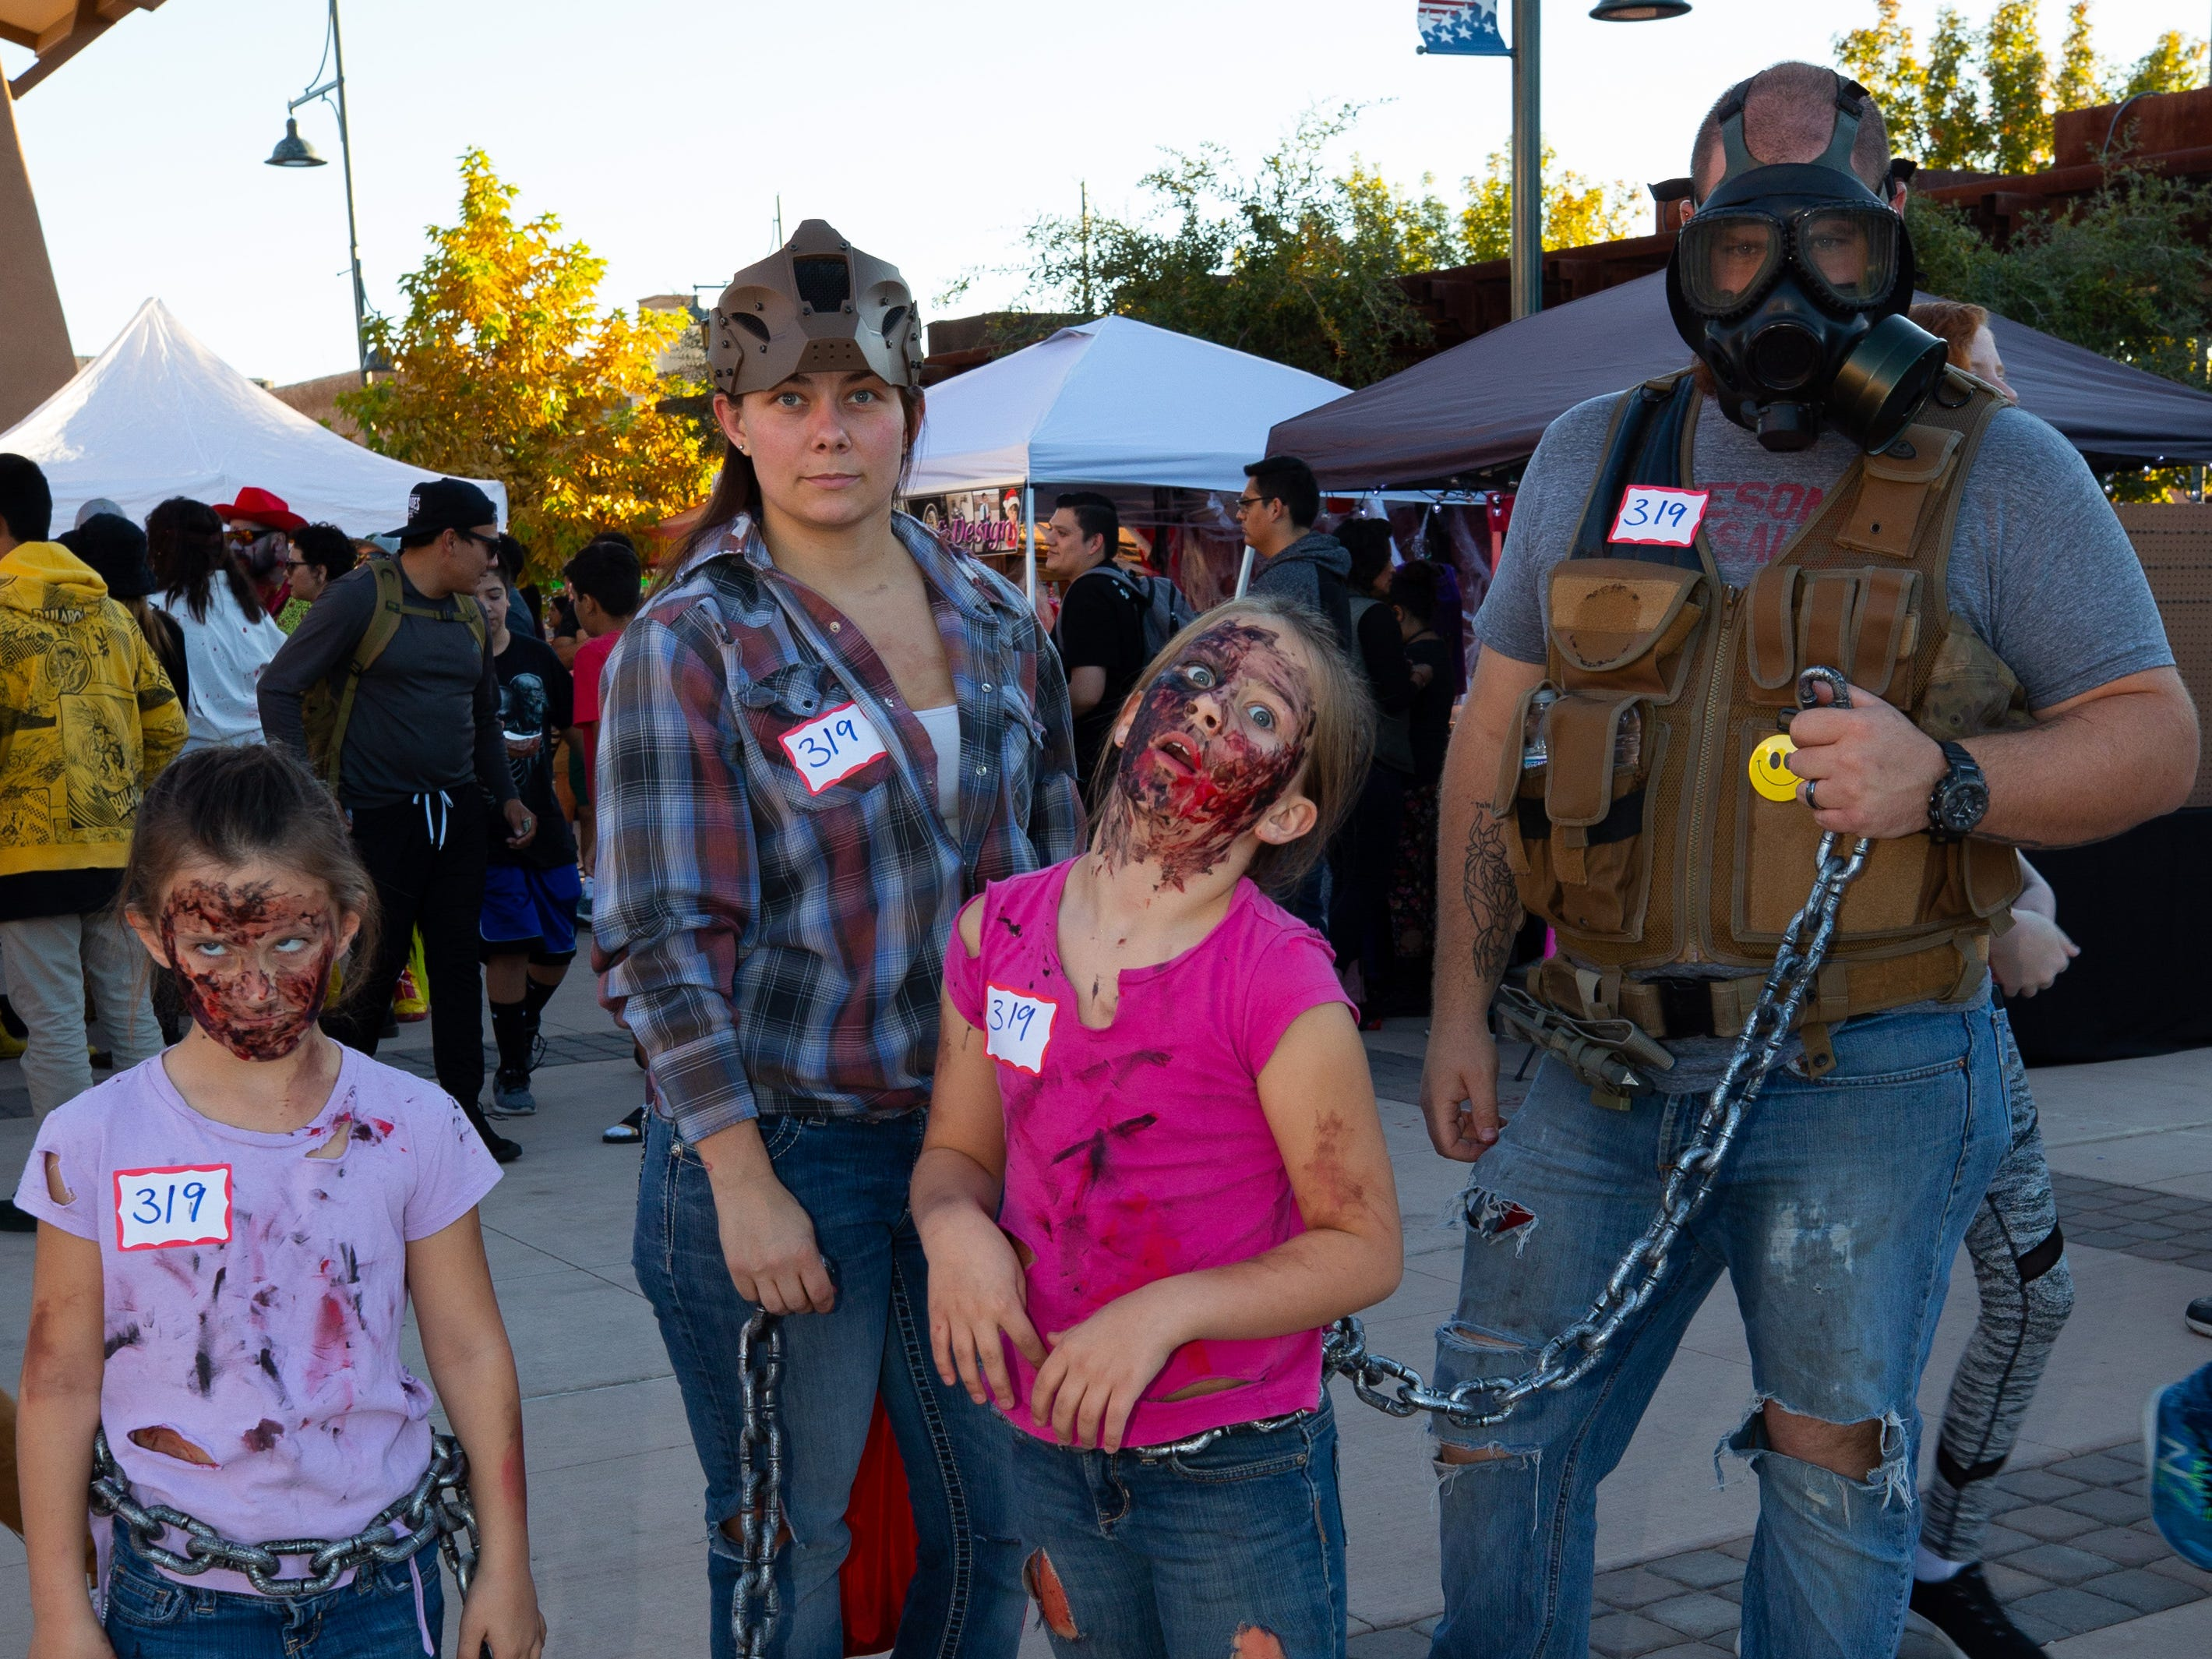 """""""The Walking Dead"""" family, from left: Brooklynn Knight, 6; Jae Knight; Mattilynn Knight, 8; and Brady Knight at the 2018 Zombie Walk held on Saturday, Oct. 27, 2018."""